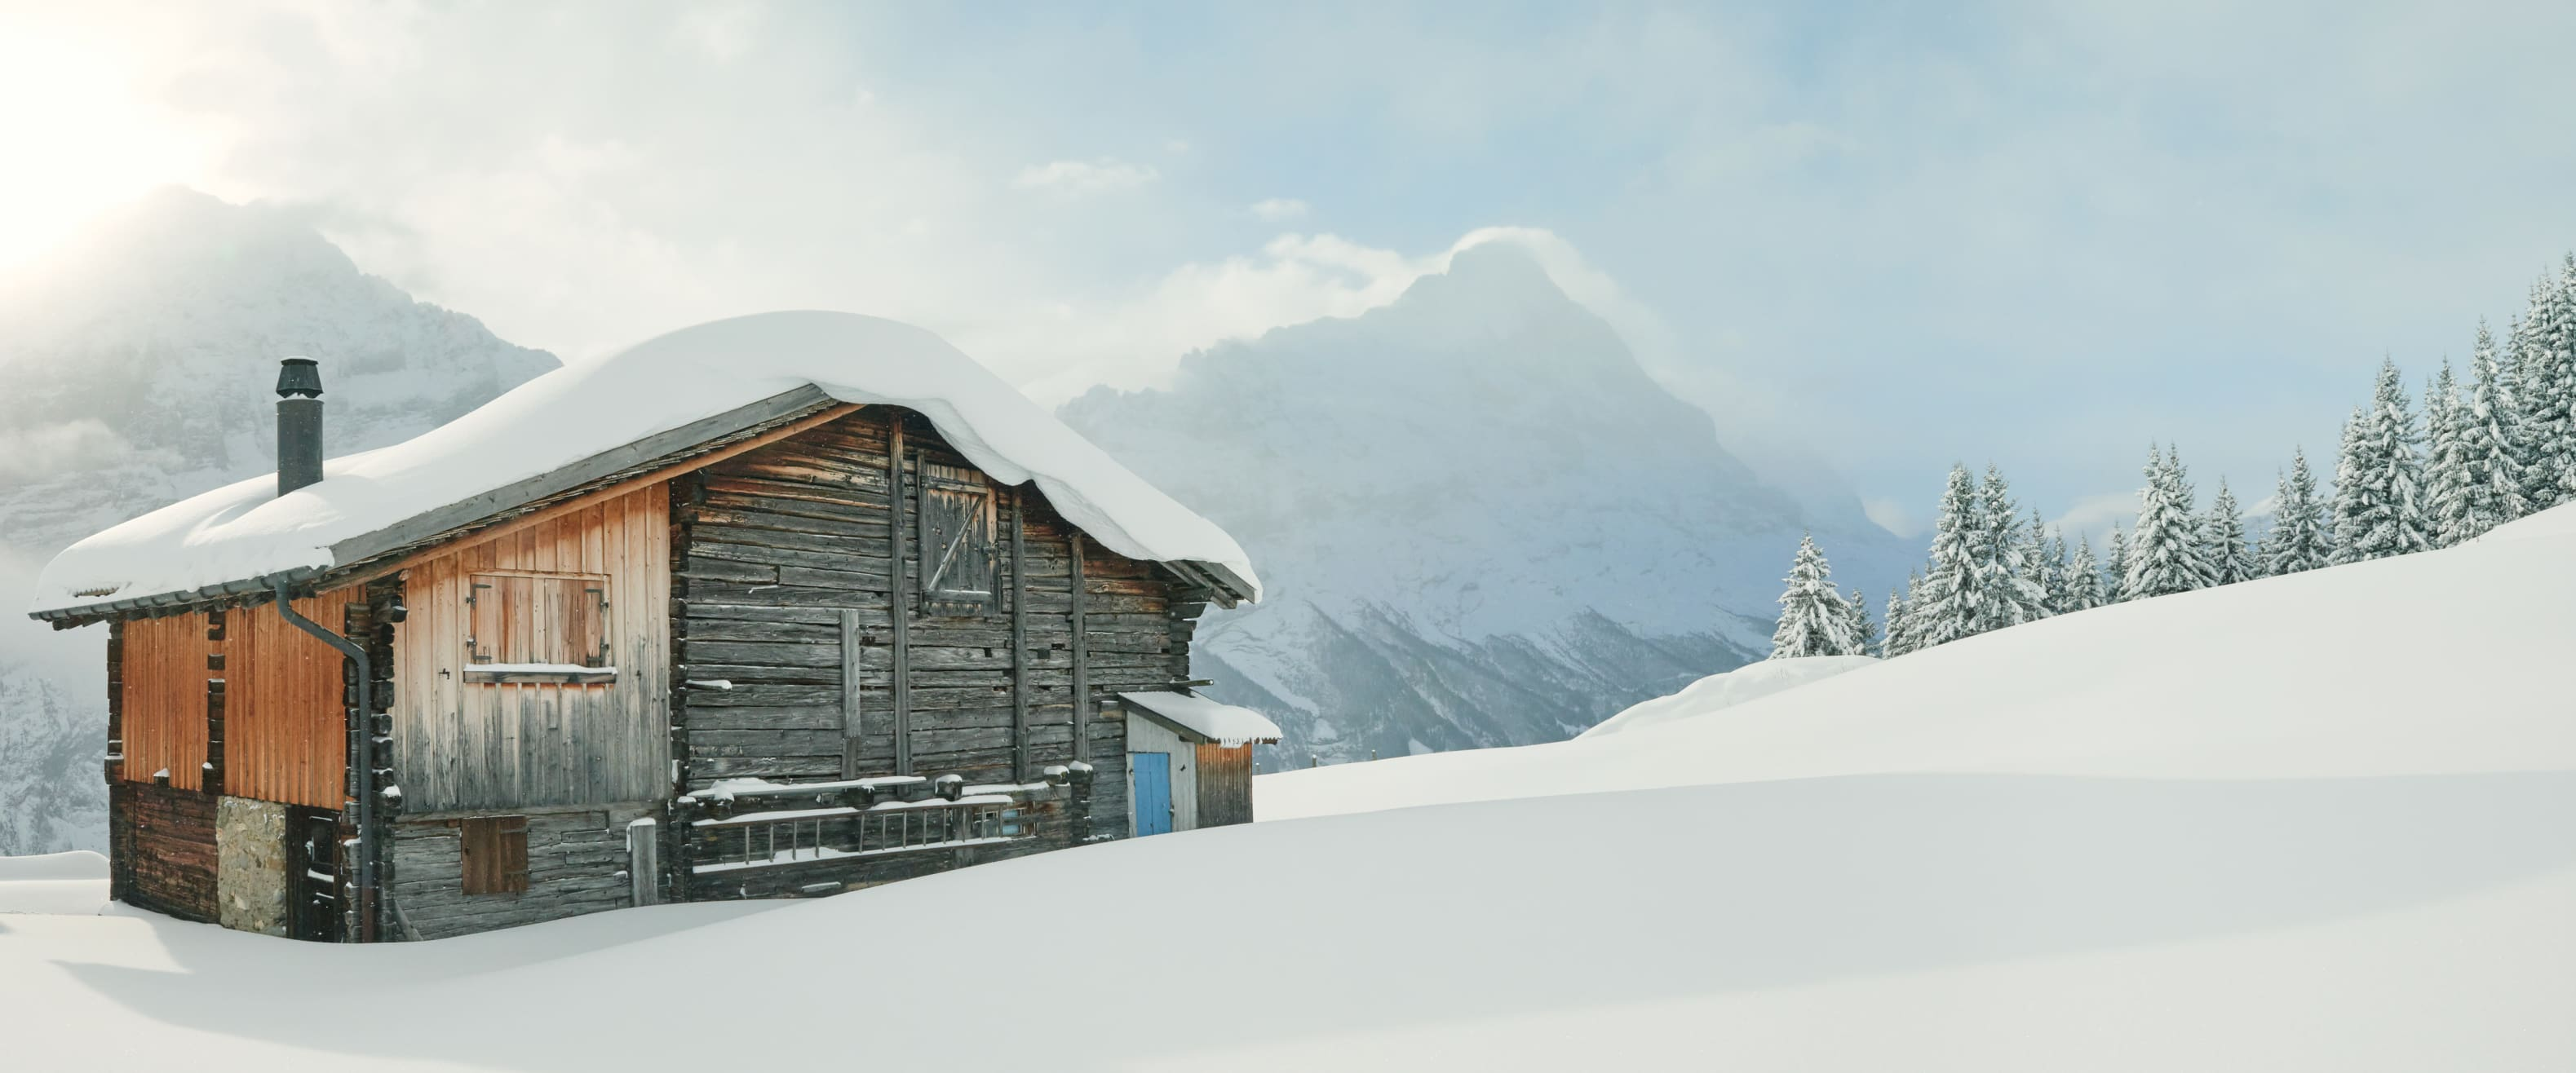 Grindelwald First Winter Alphuette Eiger